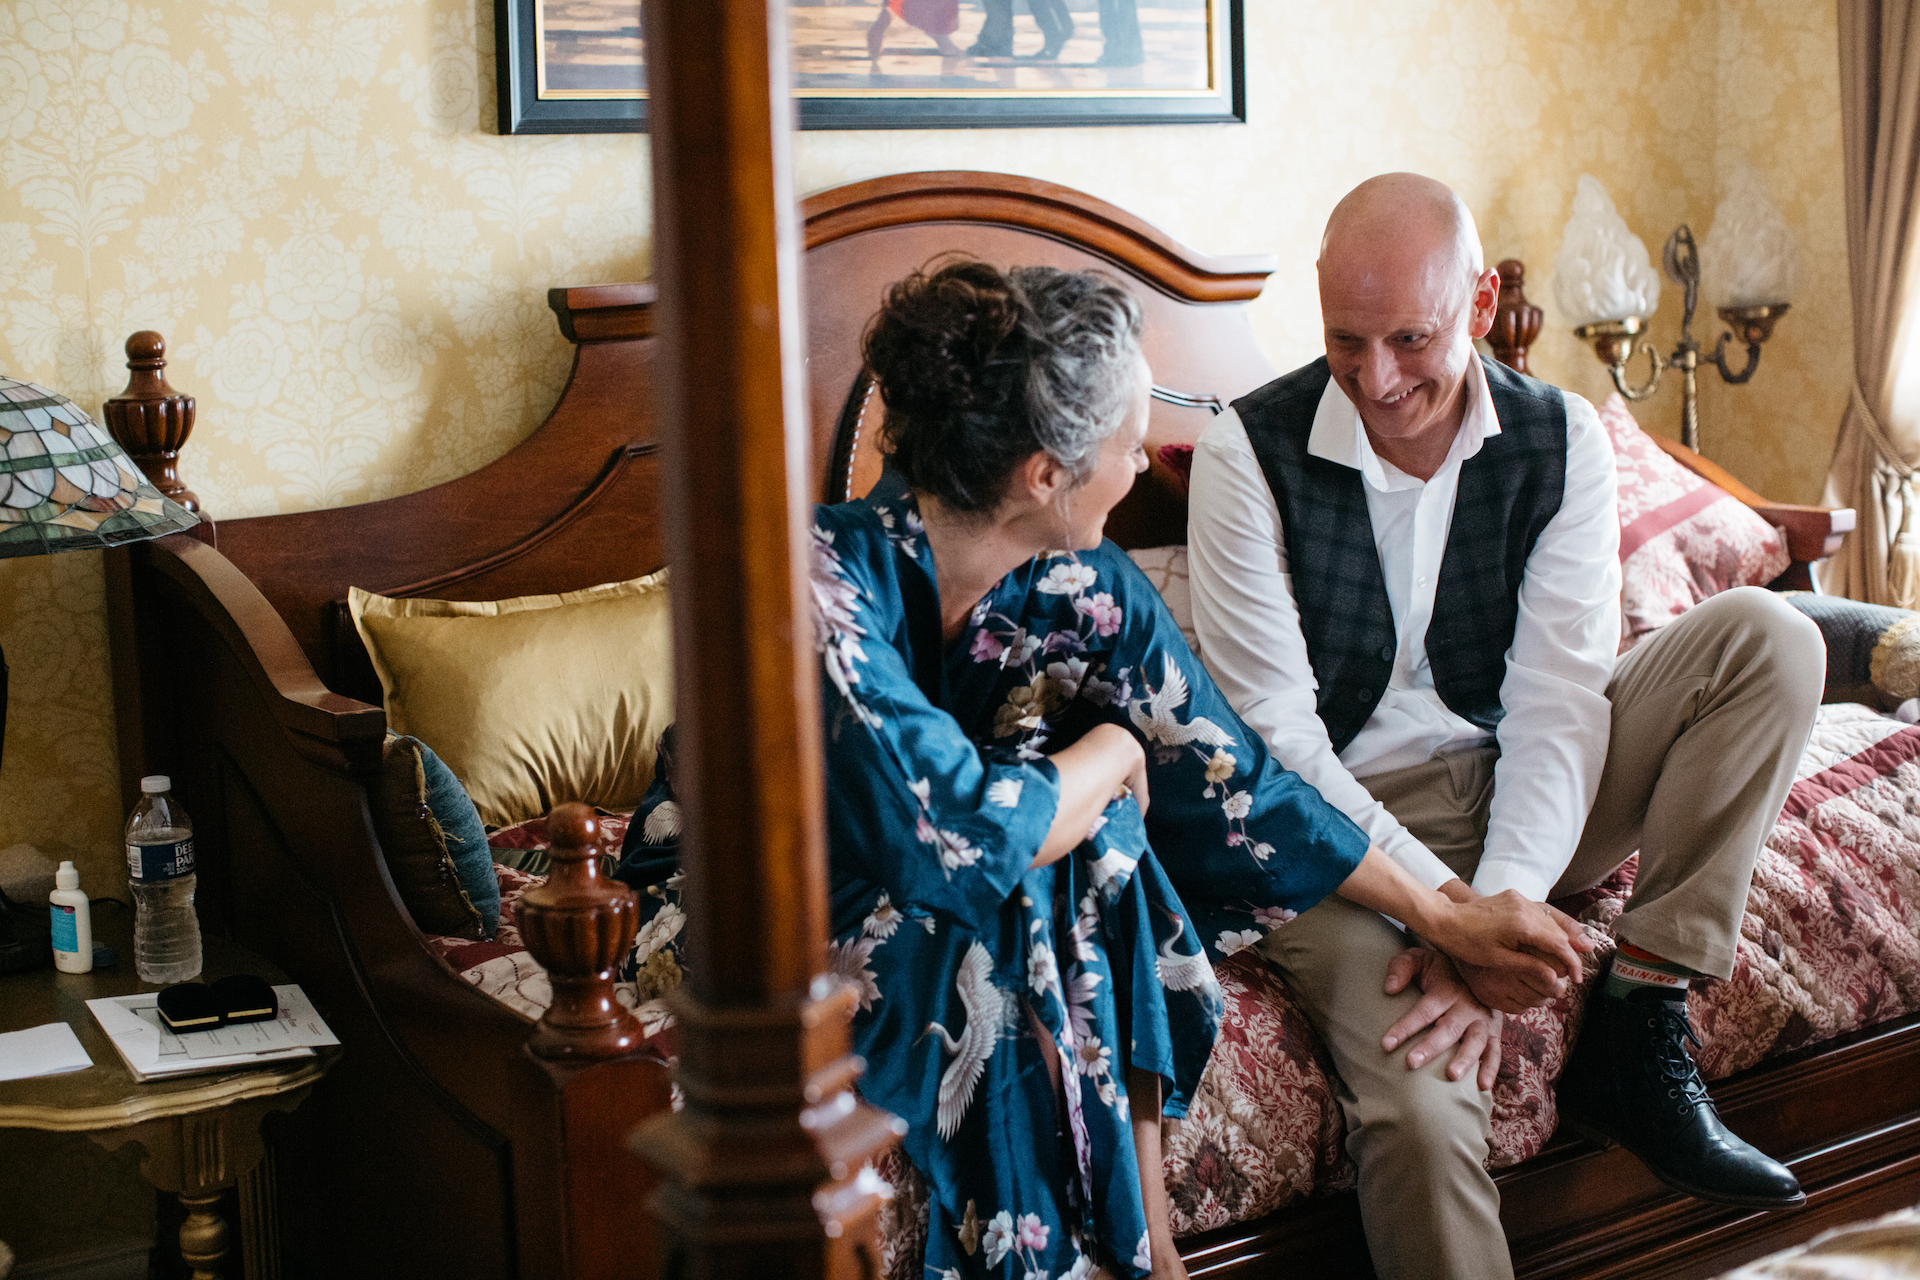 Elopement Images from Manayunk Chambers Guest House in Philadelphia | The couple spent some time together